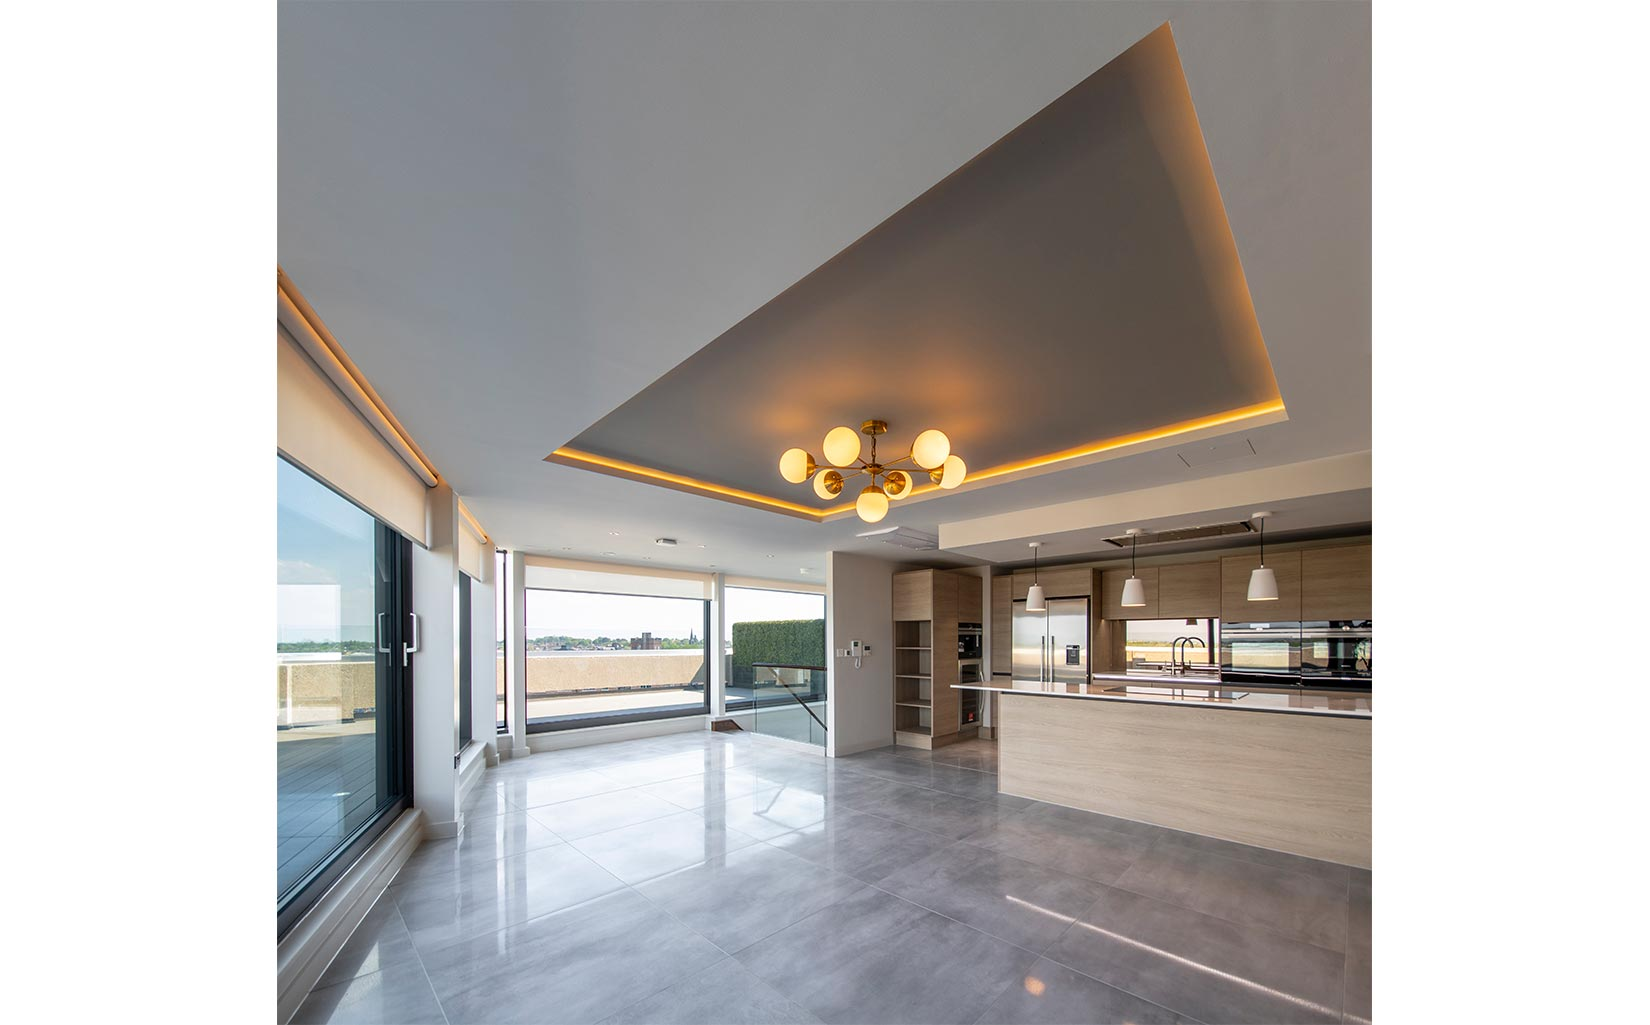 Stonebow House, York, Interior of penthouse - Photograph © Oakgate Developments Plc